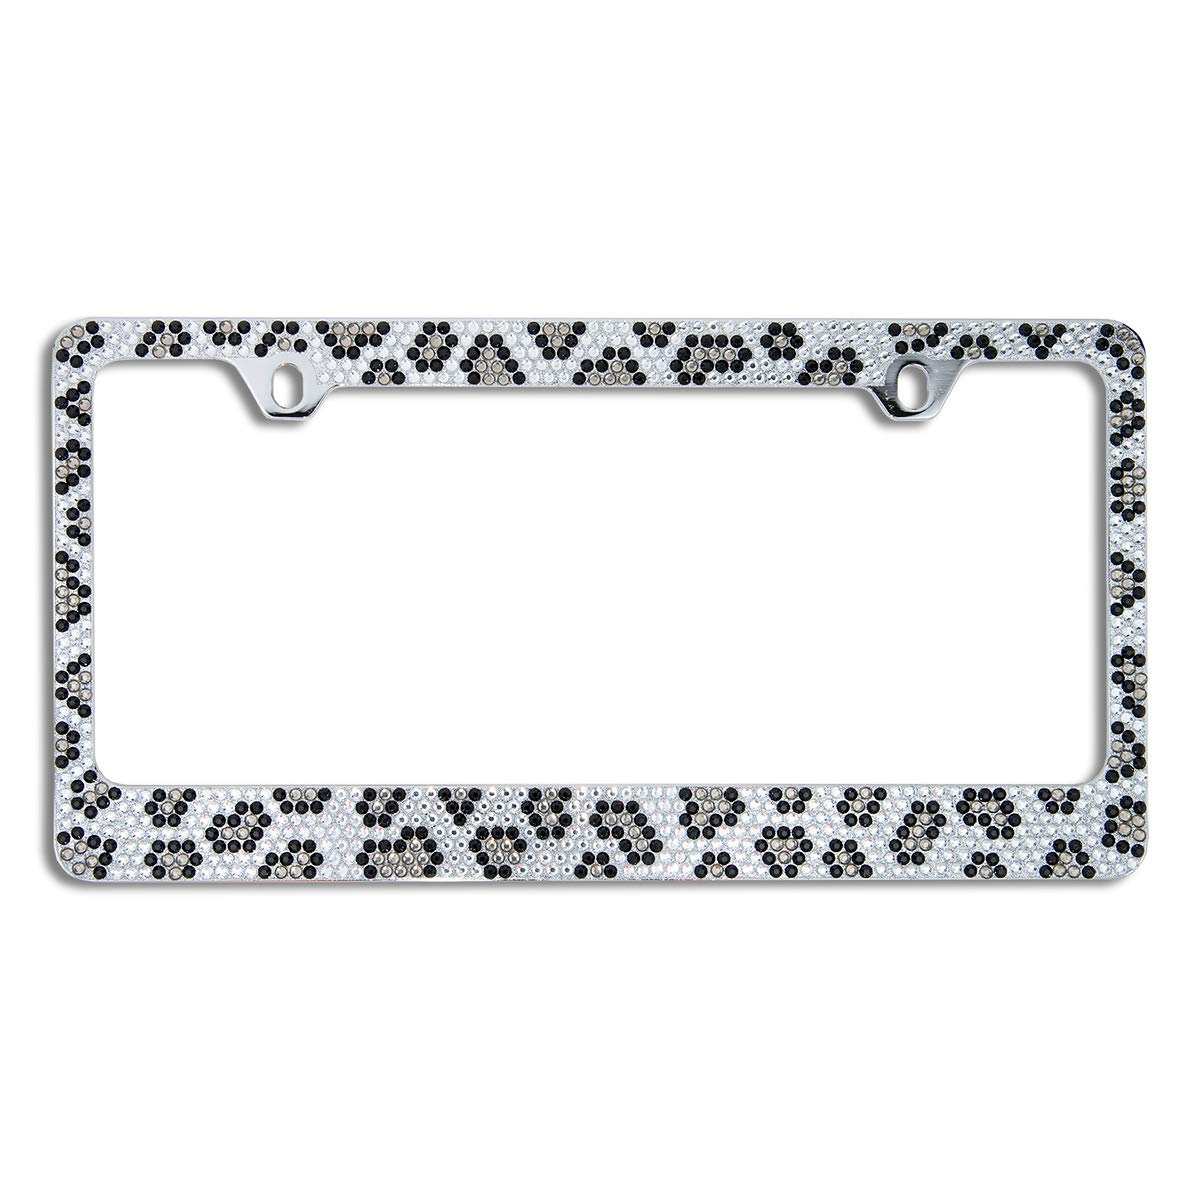 BLVD-LPF OBEY YOUR LUXURY  Popular Bling 7 Row AB Aurora Borealis Color Crystal Metal Chrome License Plate Frame with Crystal Screw Caps 1 Frame